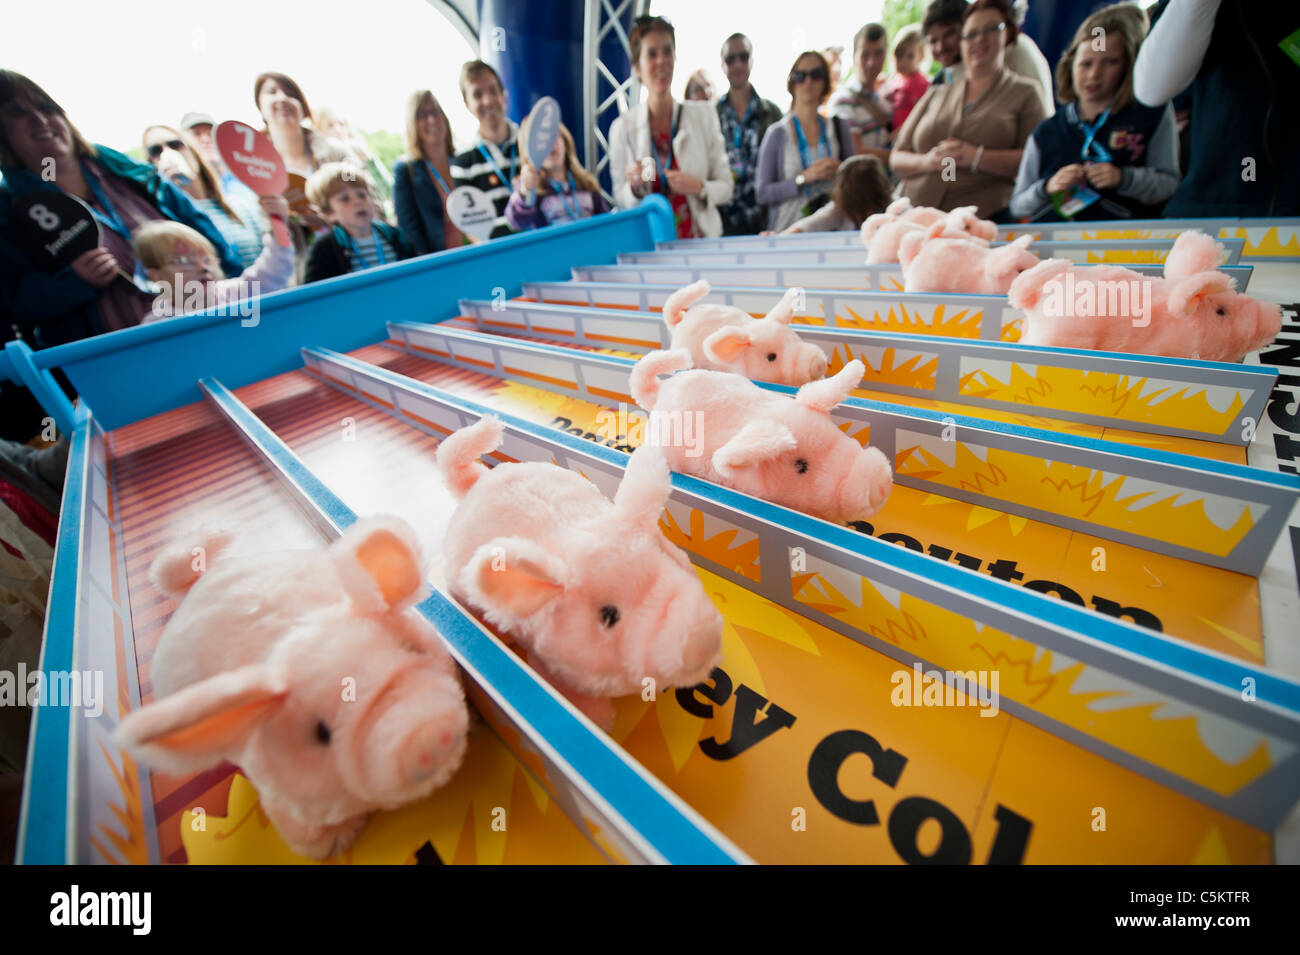 The 15000 strong crowd enjoys the RSPCA pig race, music and free ice cream. Ben and Jerry's Sundae festival - Stock Image